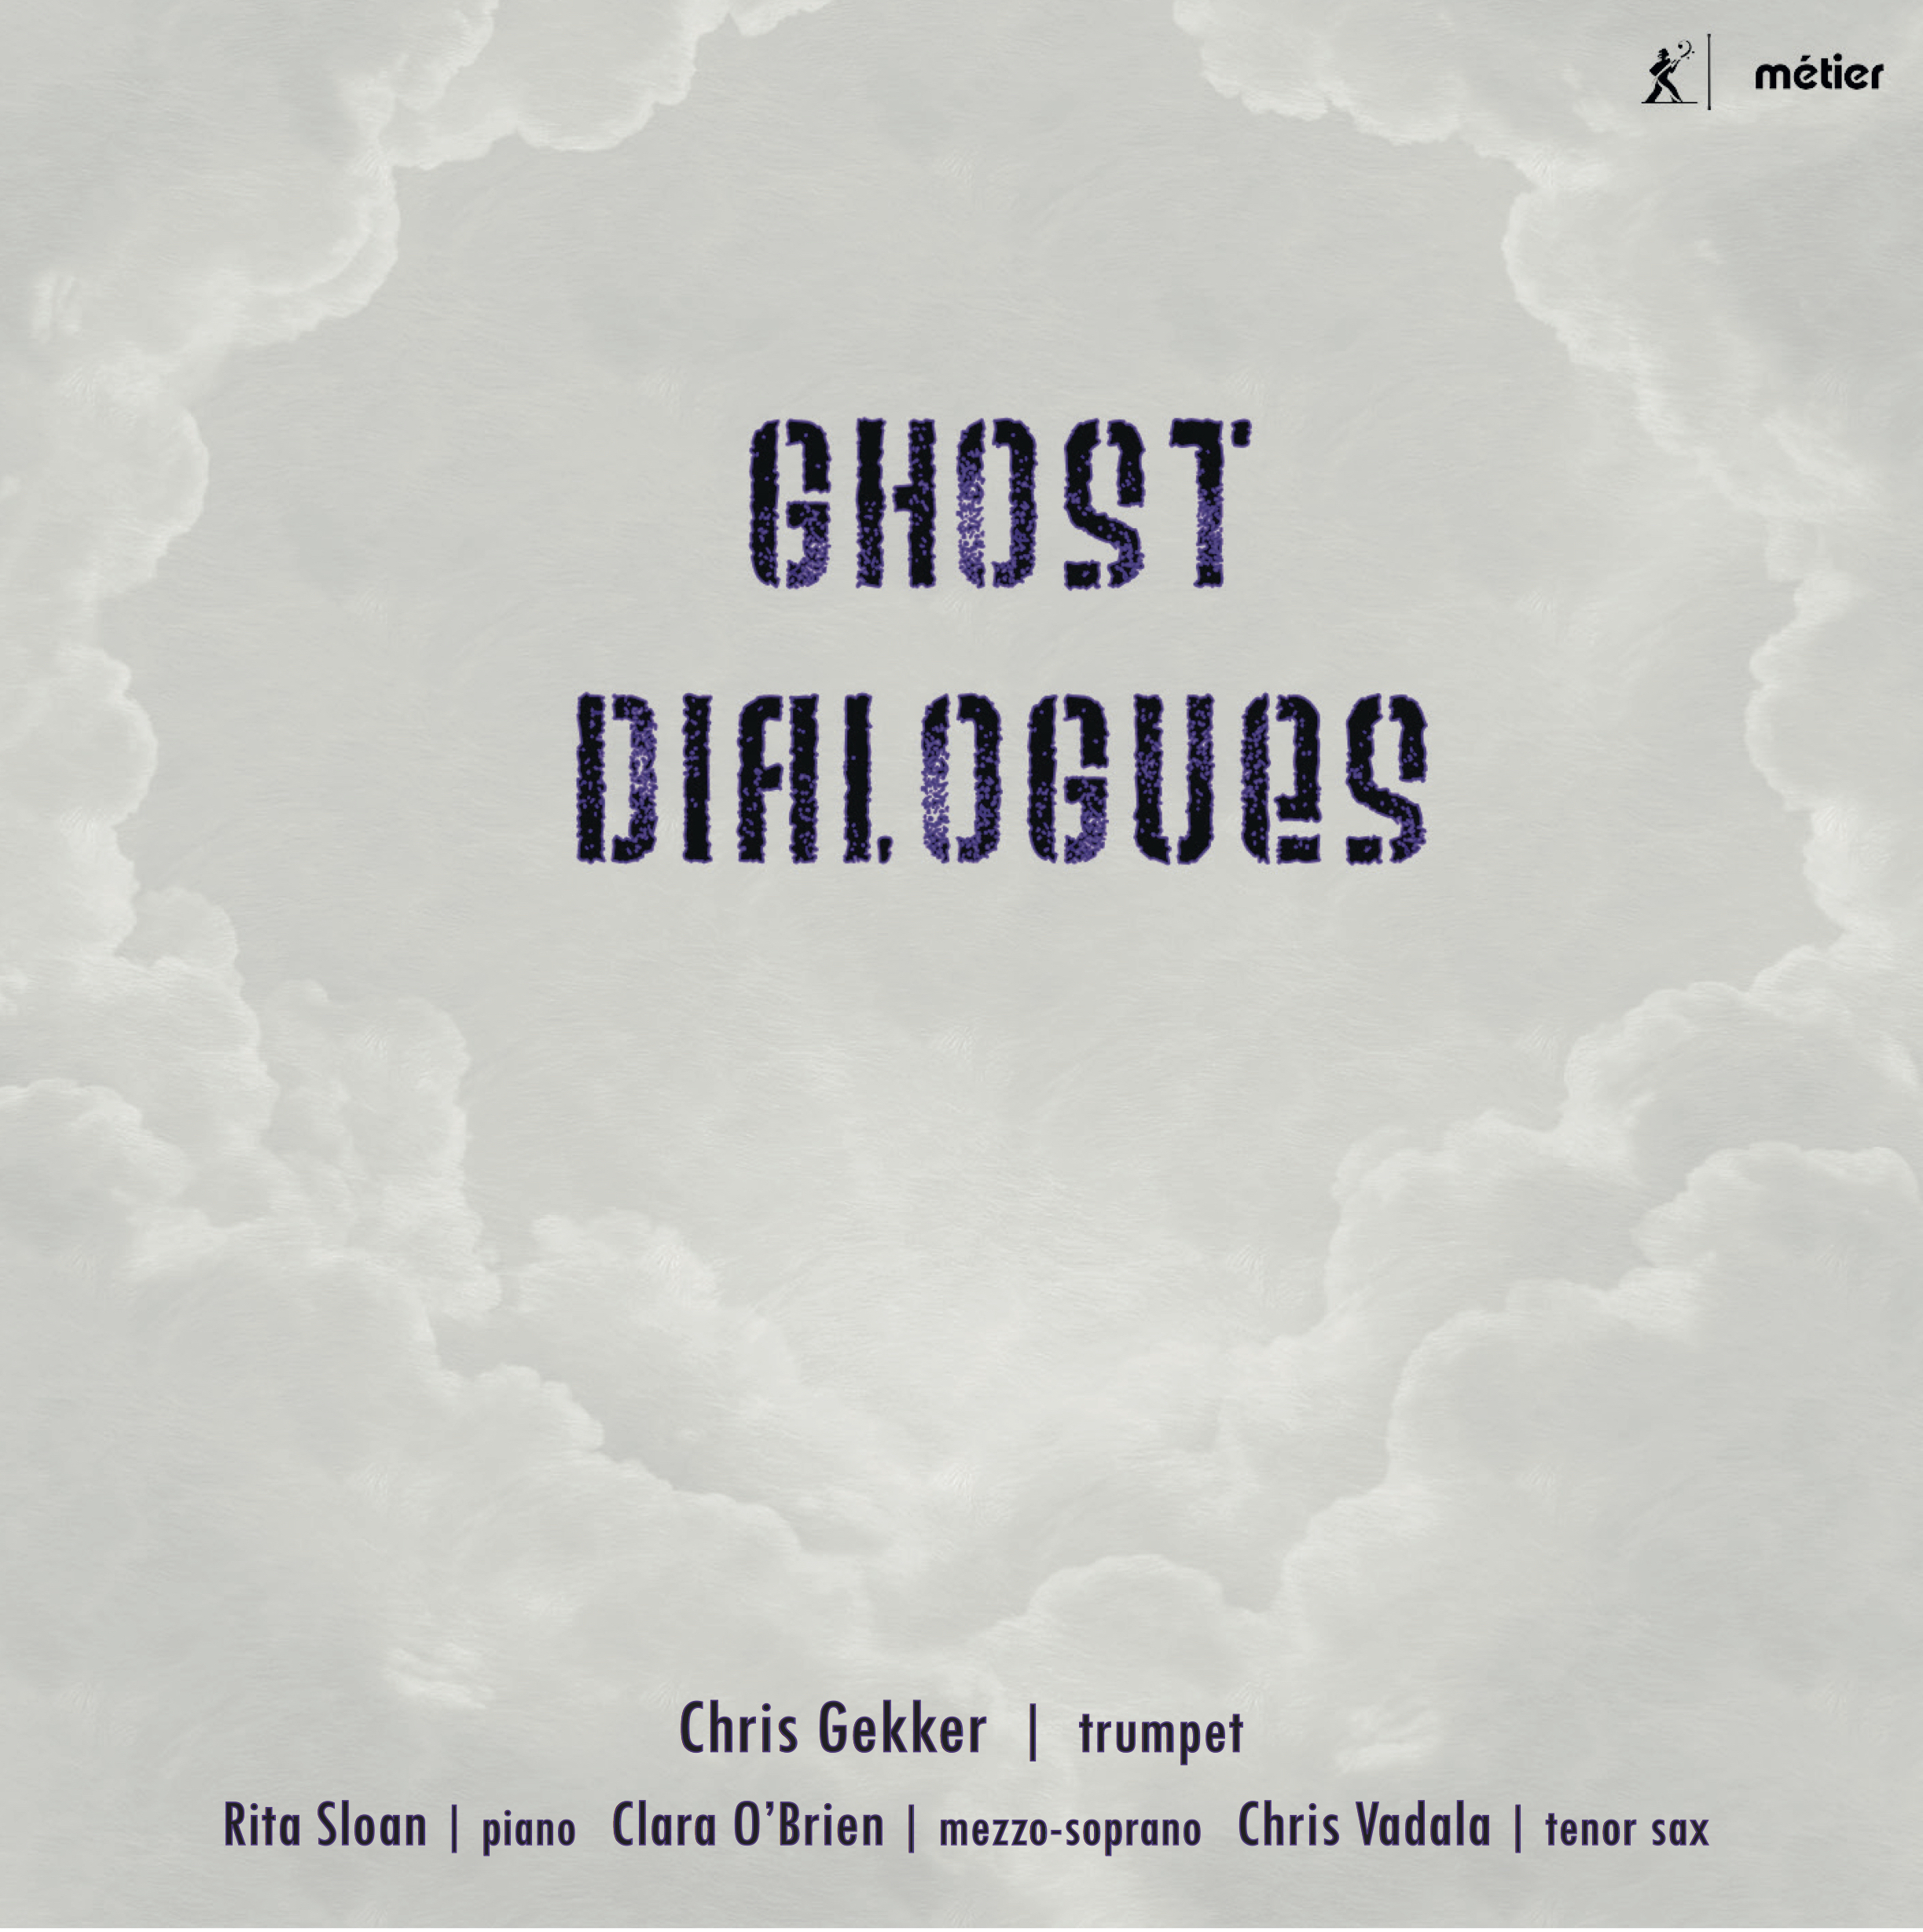 Ghost Dialogues CD Cover .jpg